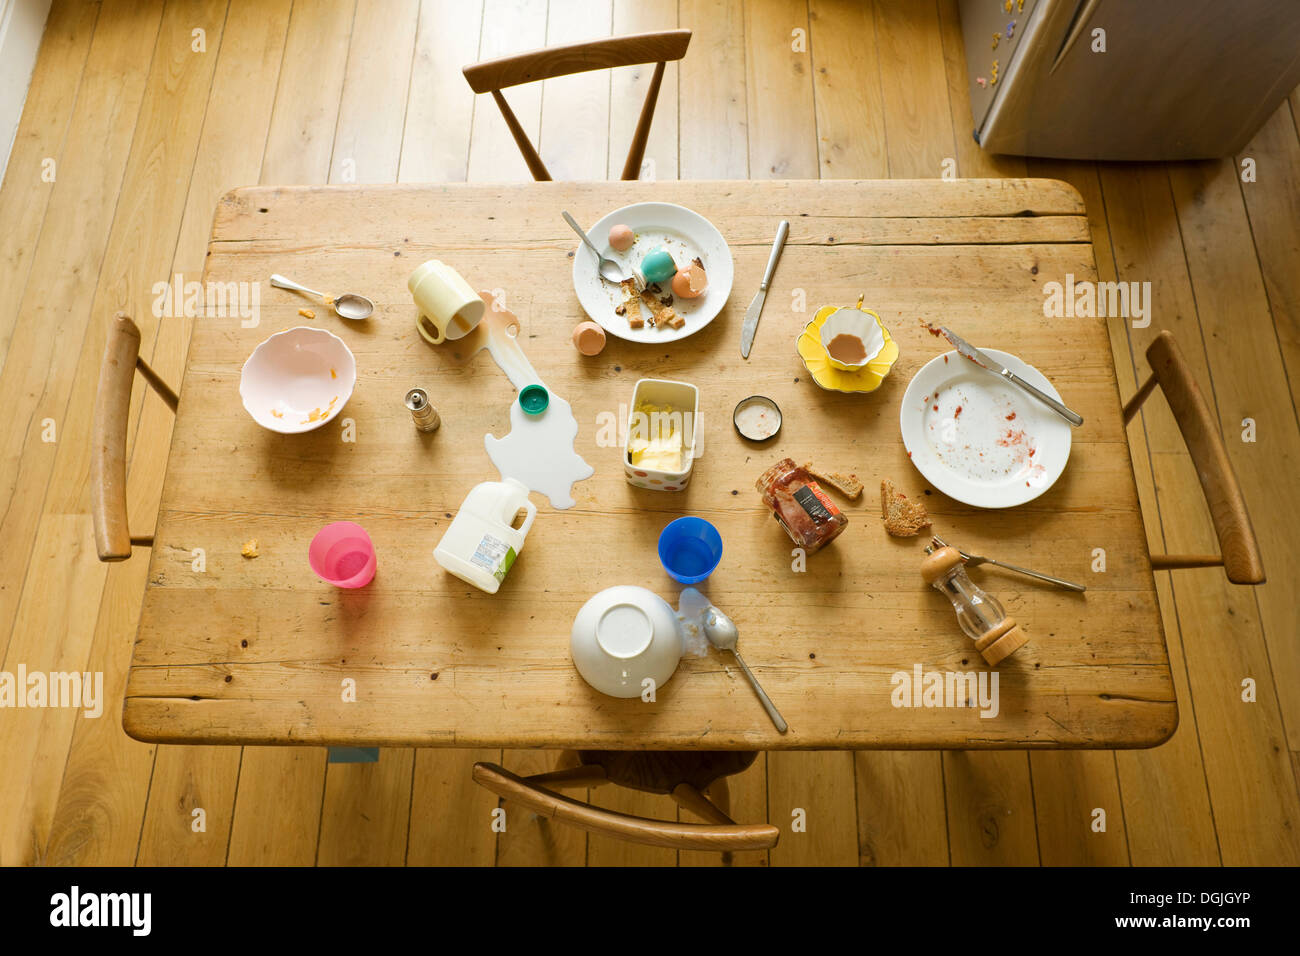 Overhead view of breakfast table with eaten food and messy plates Stock Foto